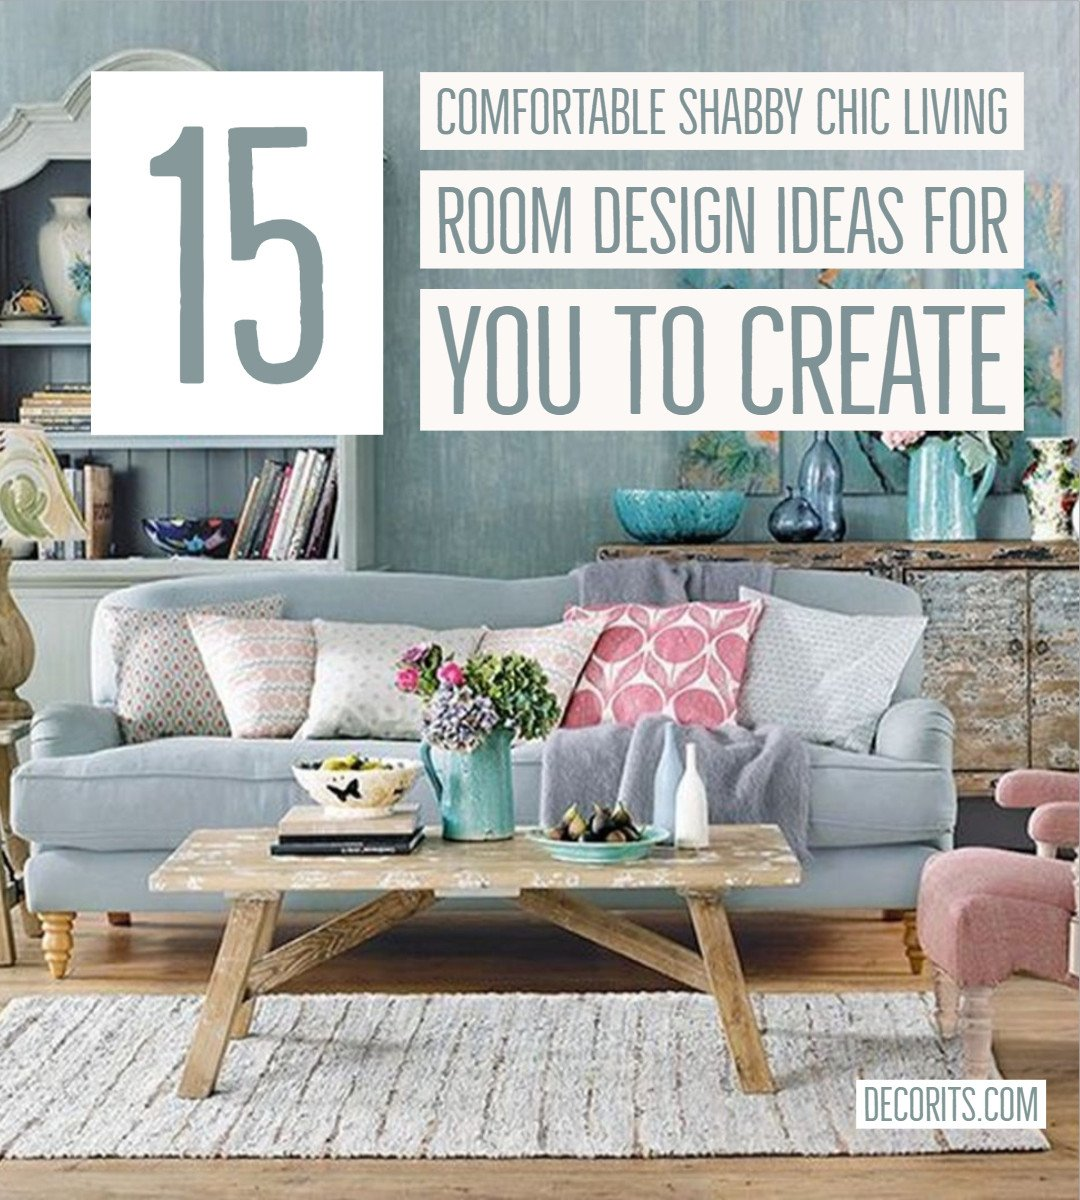 Comfortable Chic Living Room fortable Shabby Chic Living Room – Decor It S